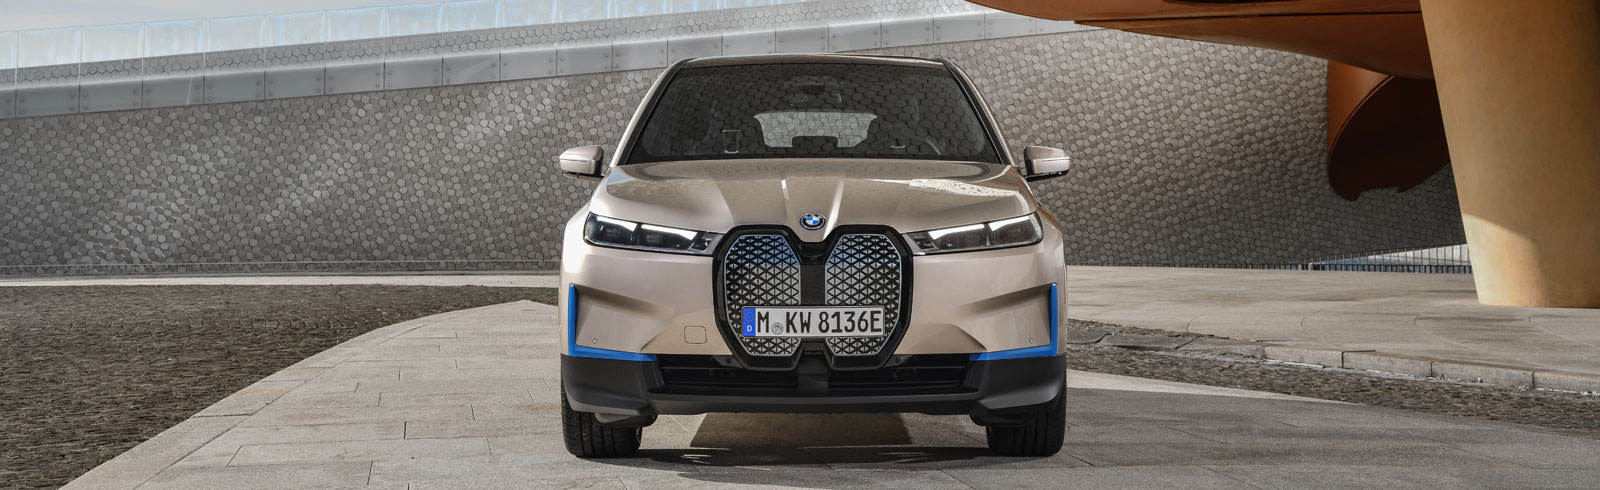 2021 BMW iX goes official with over 600 km of range, 370 kW power